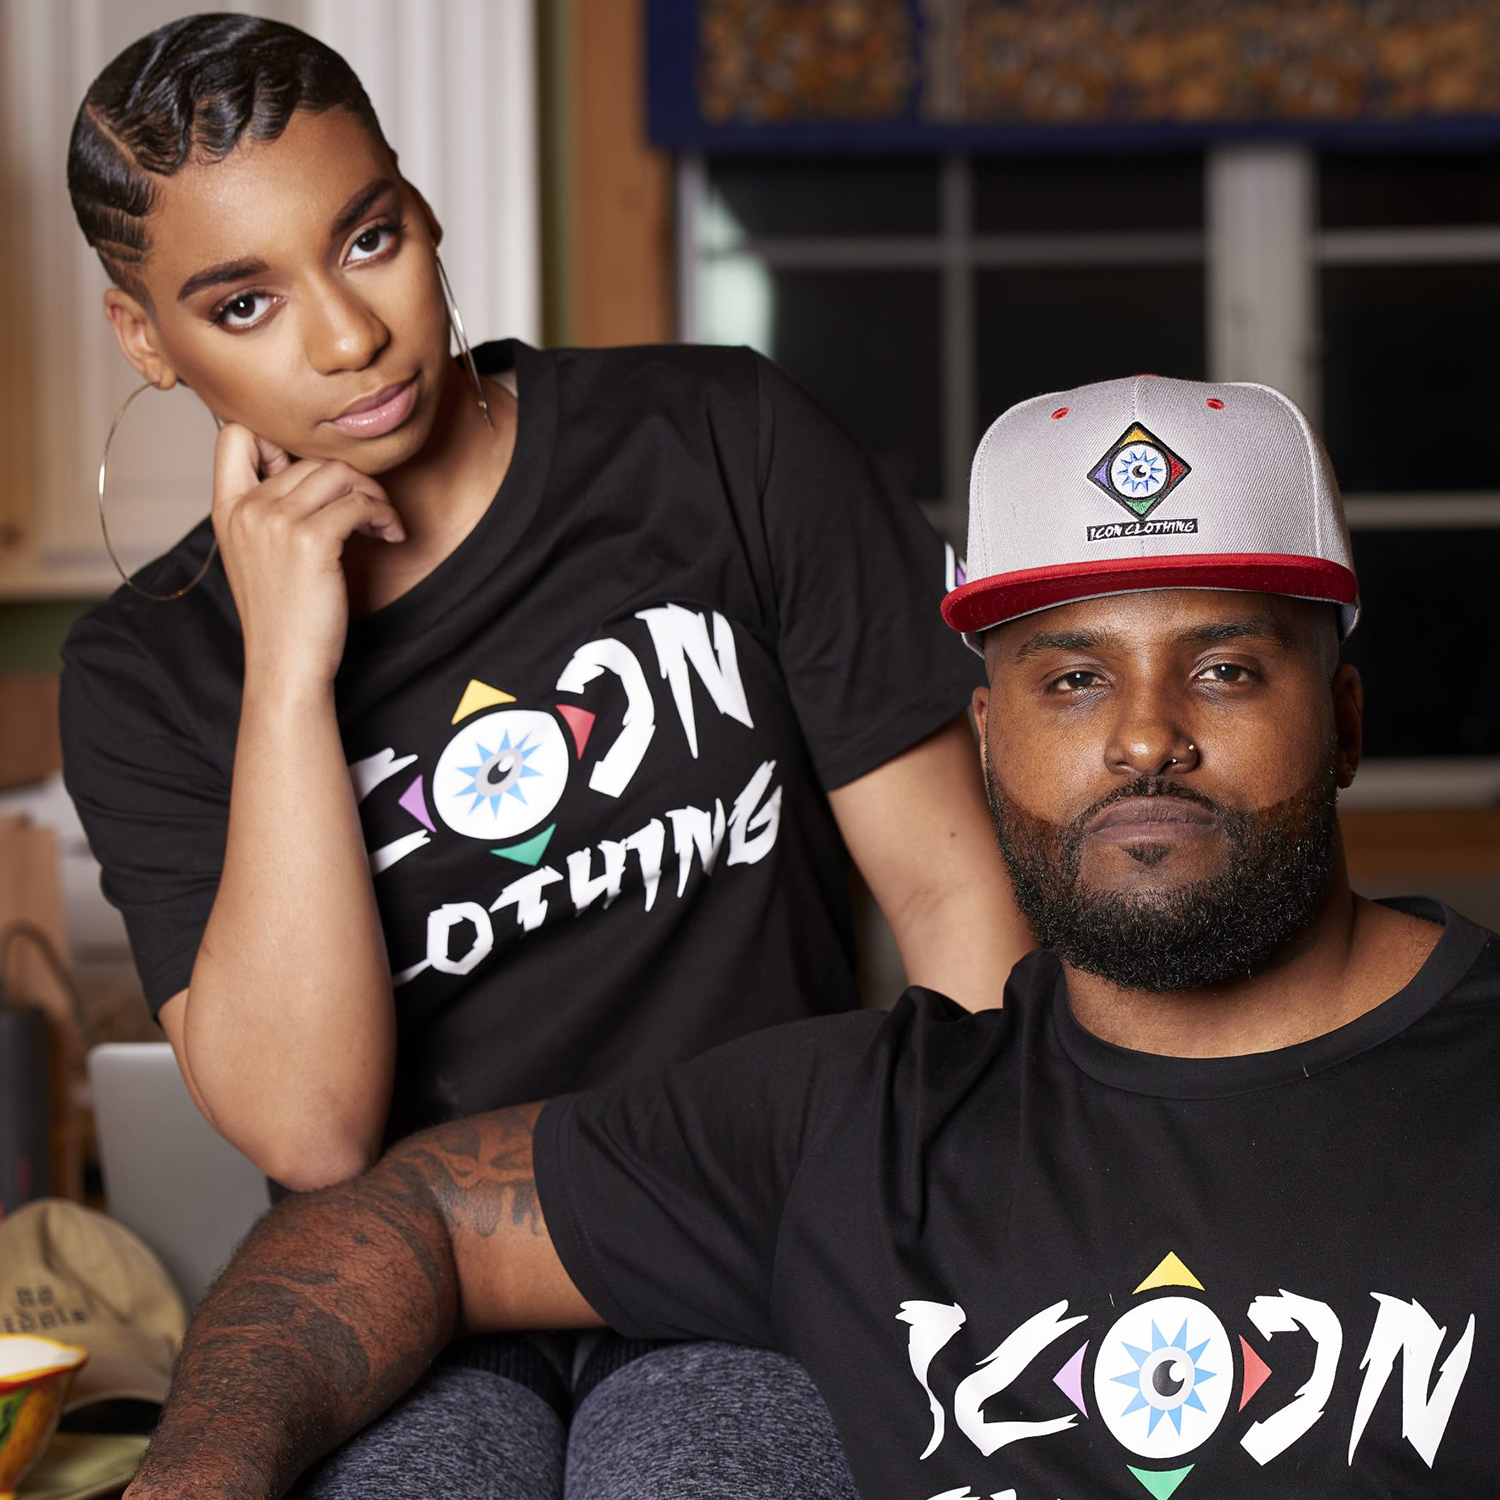 Only Icon Clothing